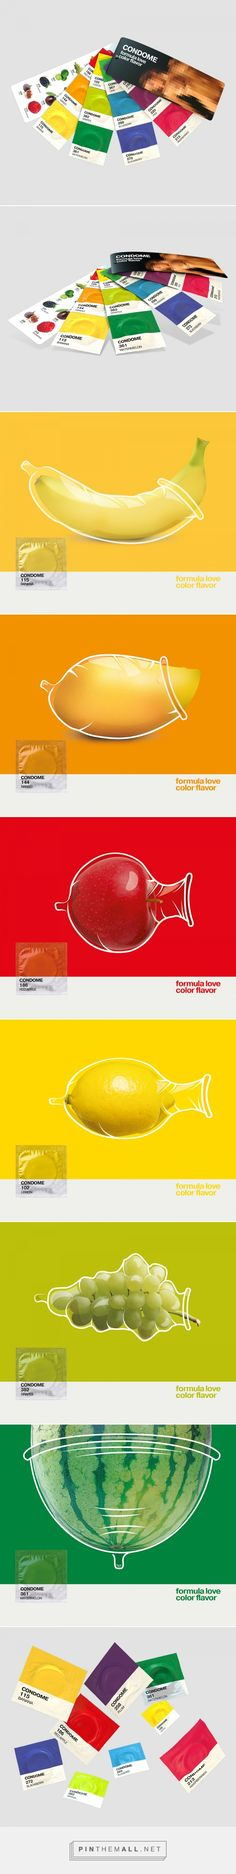 Pantone Condoms (Concept) - Packaging of the World - Creative Package Design…